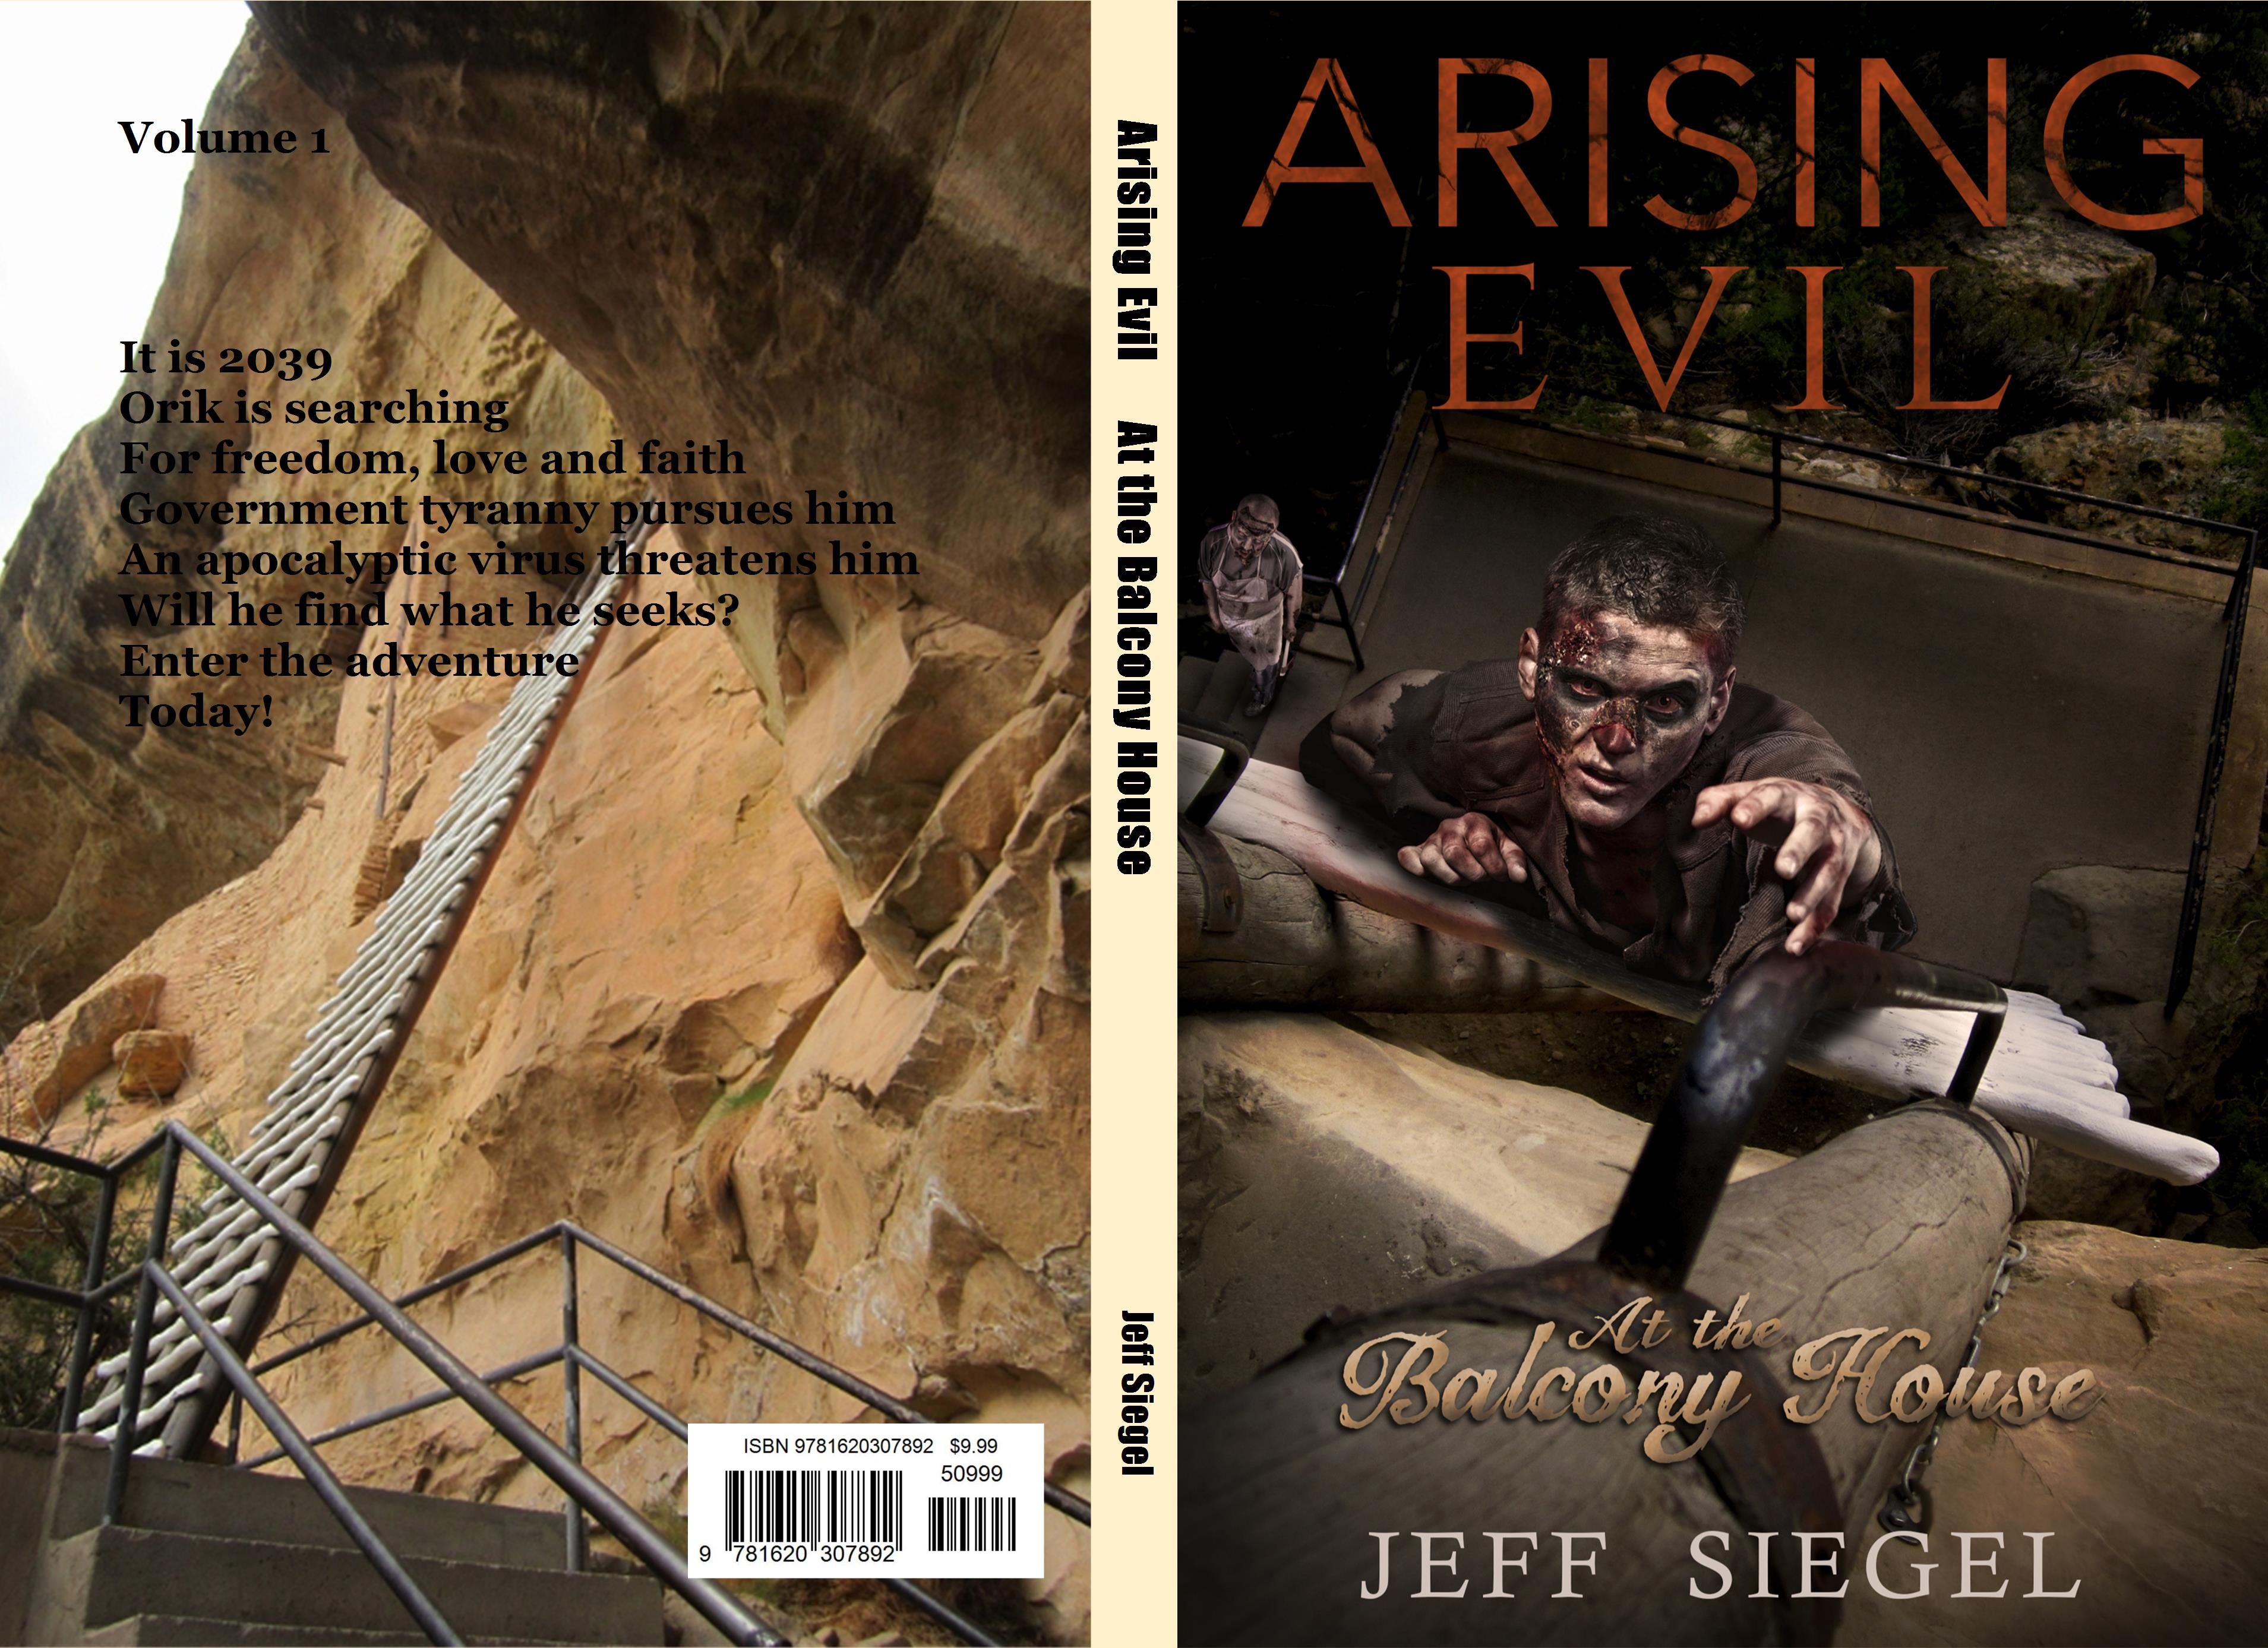 Arising Evil at the Balcony House cover image